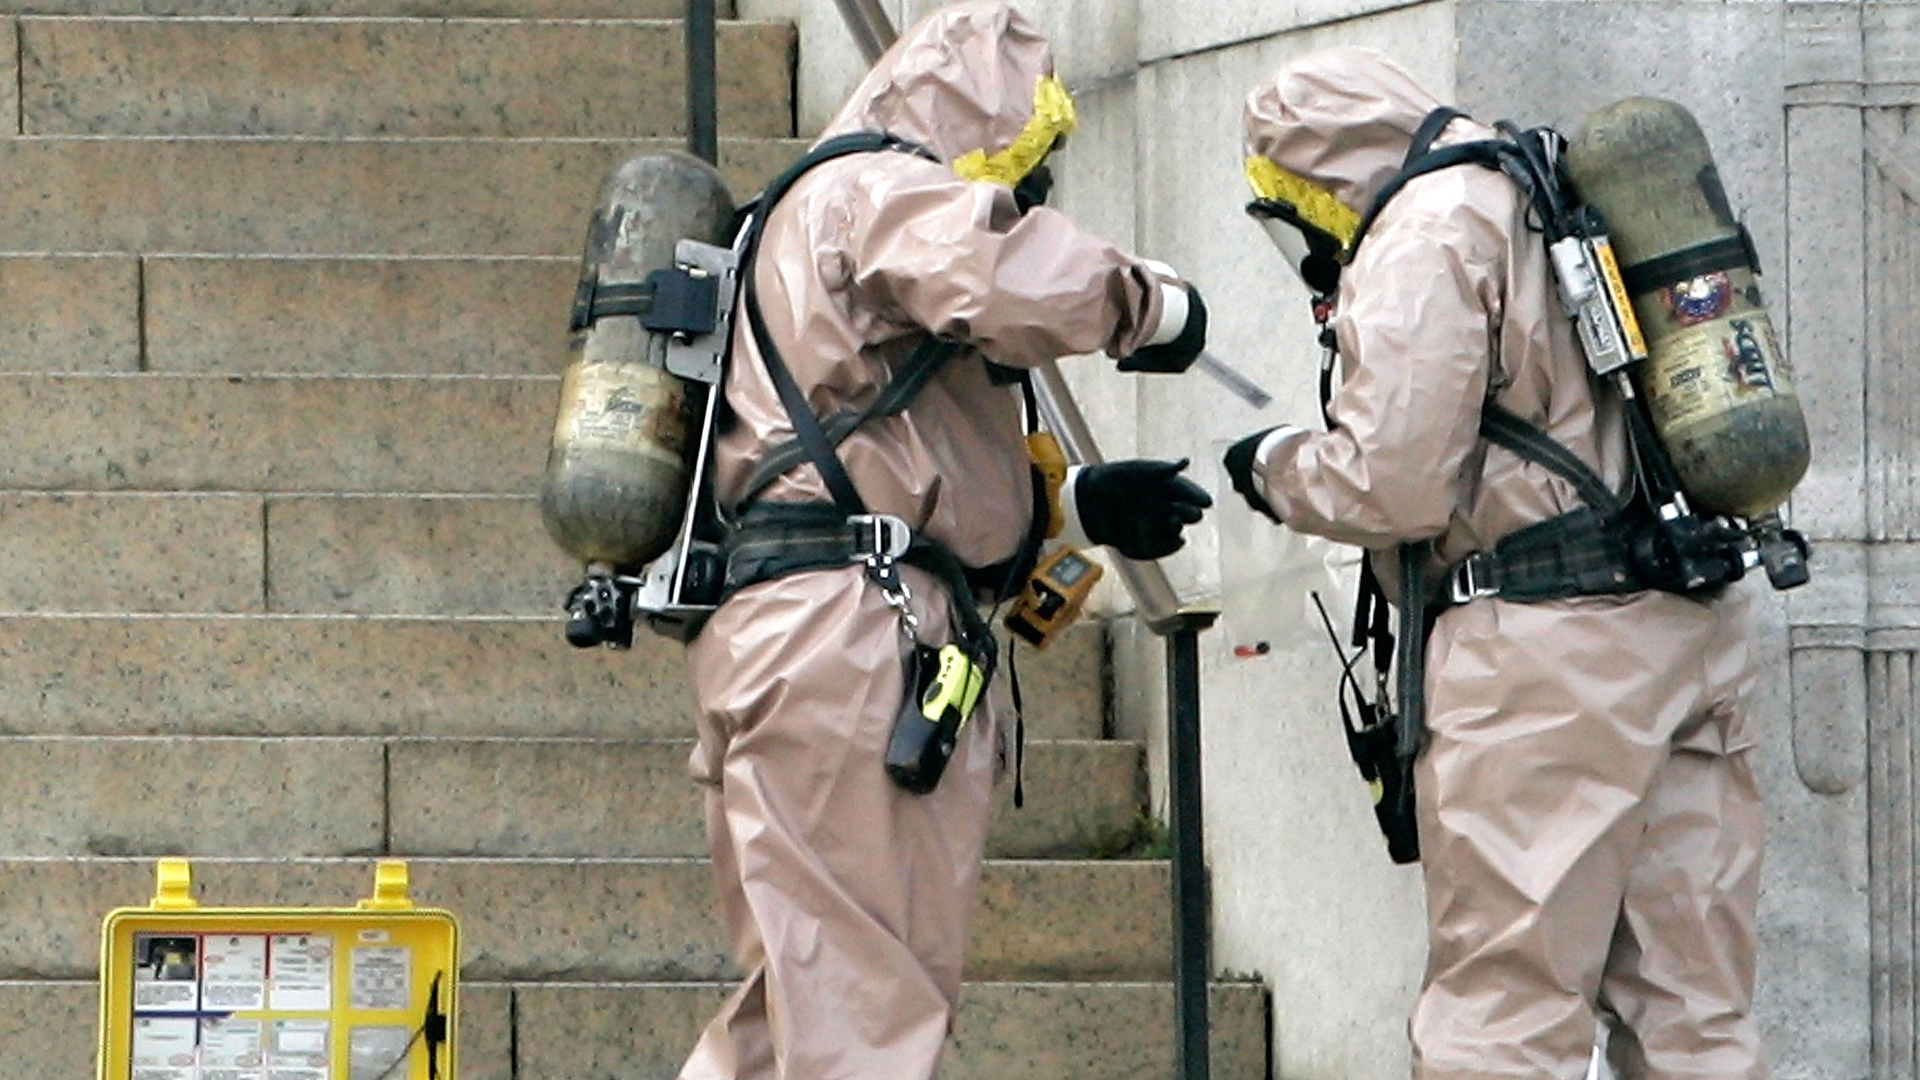 Emergency workers dressed in hazardous materials suits inspect suspicious material at the Lincoln Memorial after suspicious liquids and an envelope were discovered Nov. 27, 2006 in Washington, DC. (Credit: Alex Wong/Getty Images)